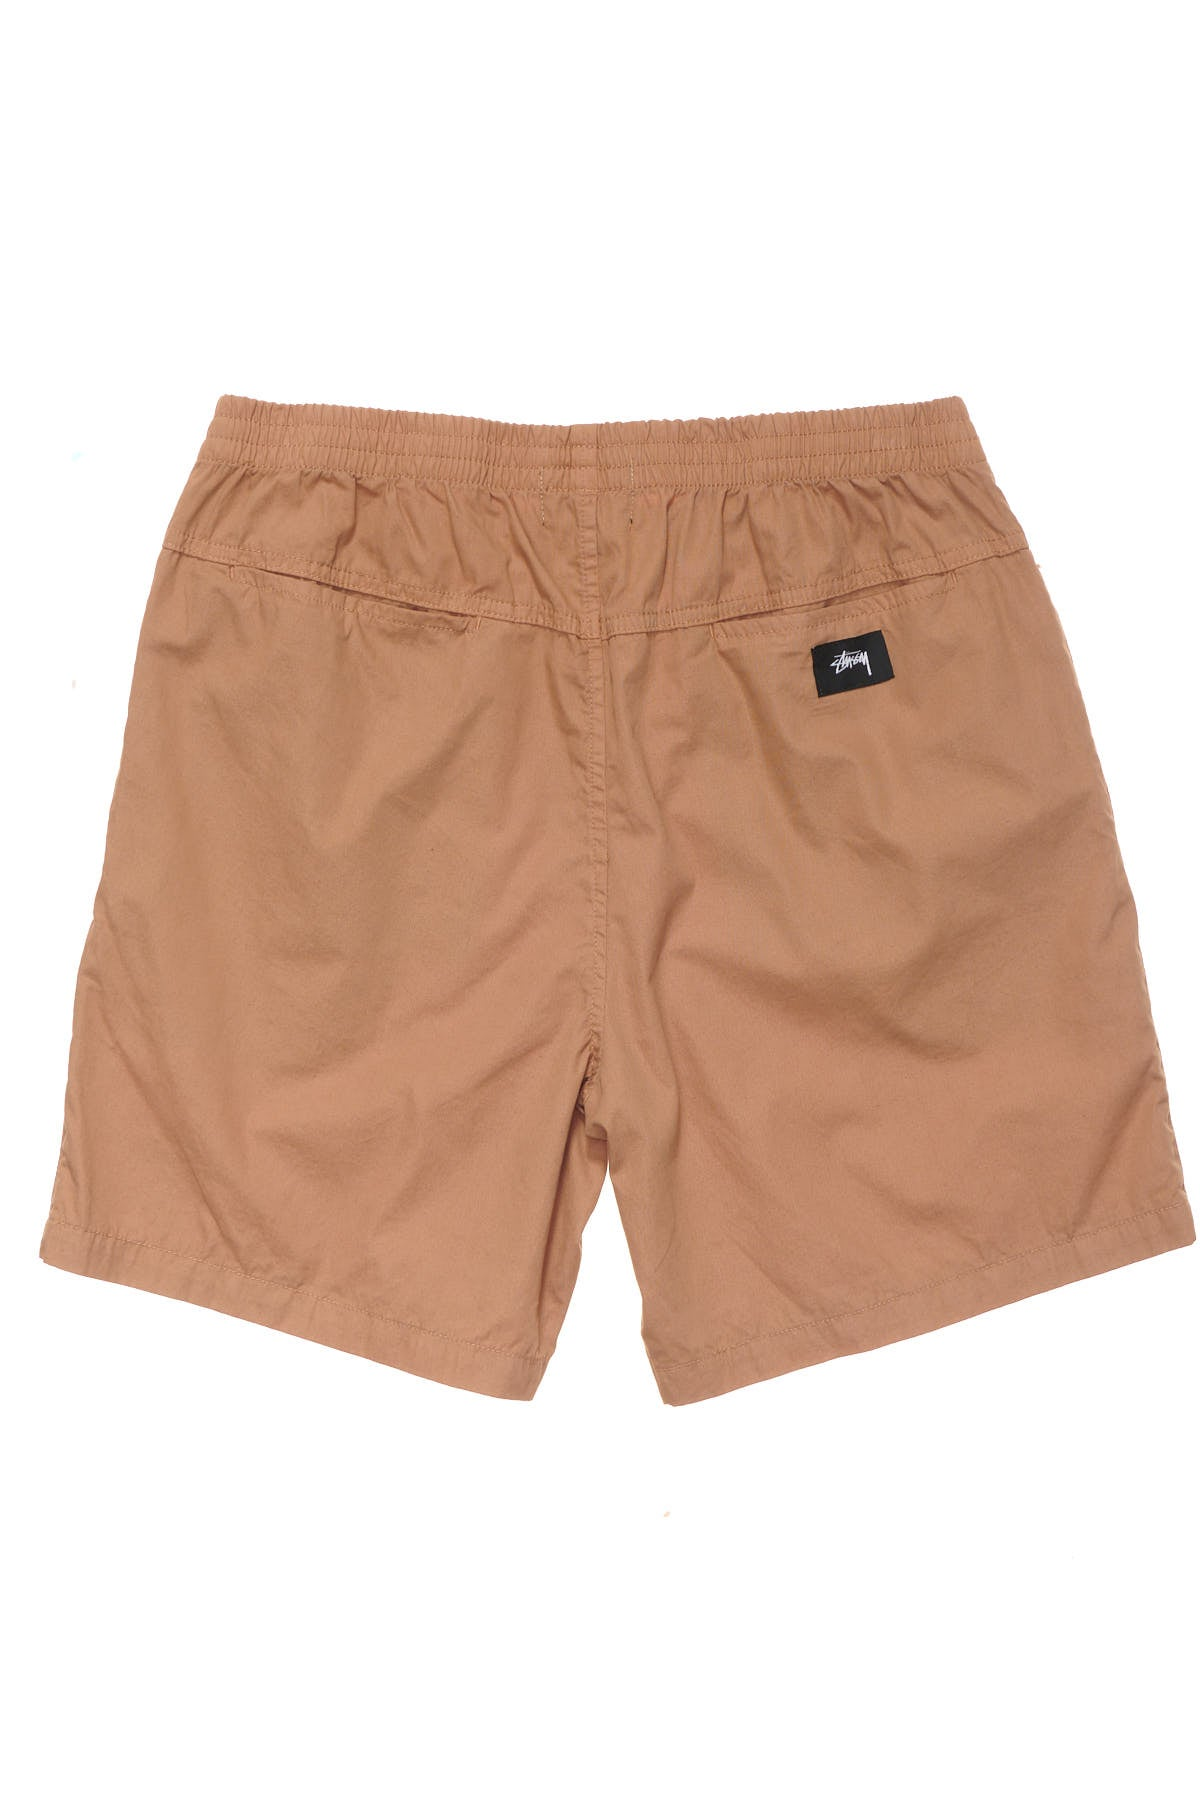 Basic Stock Beachshort